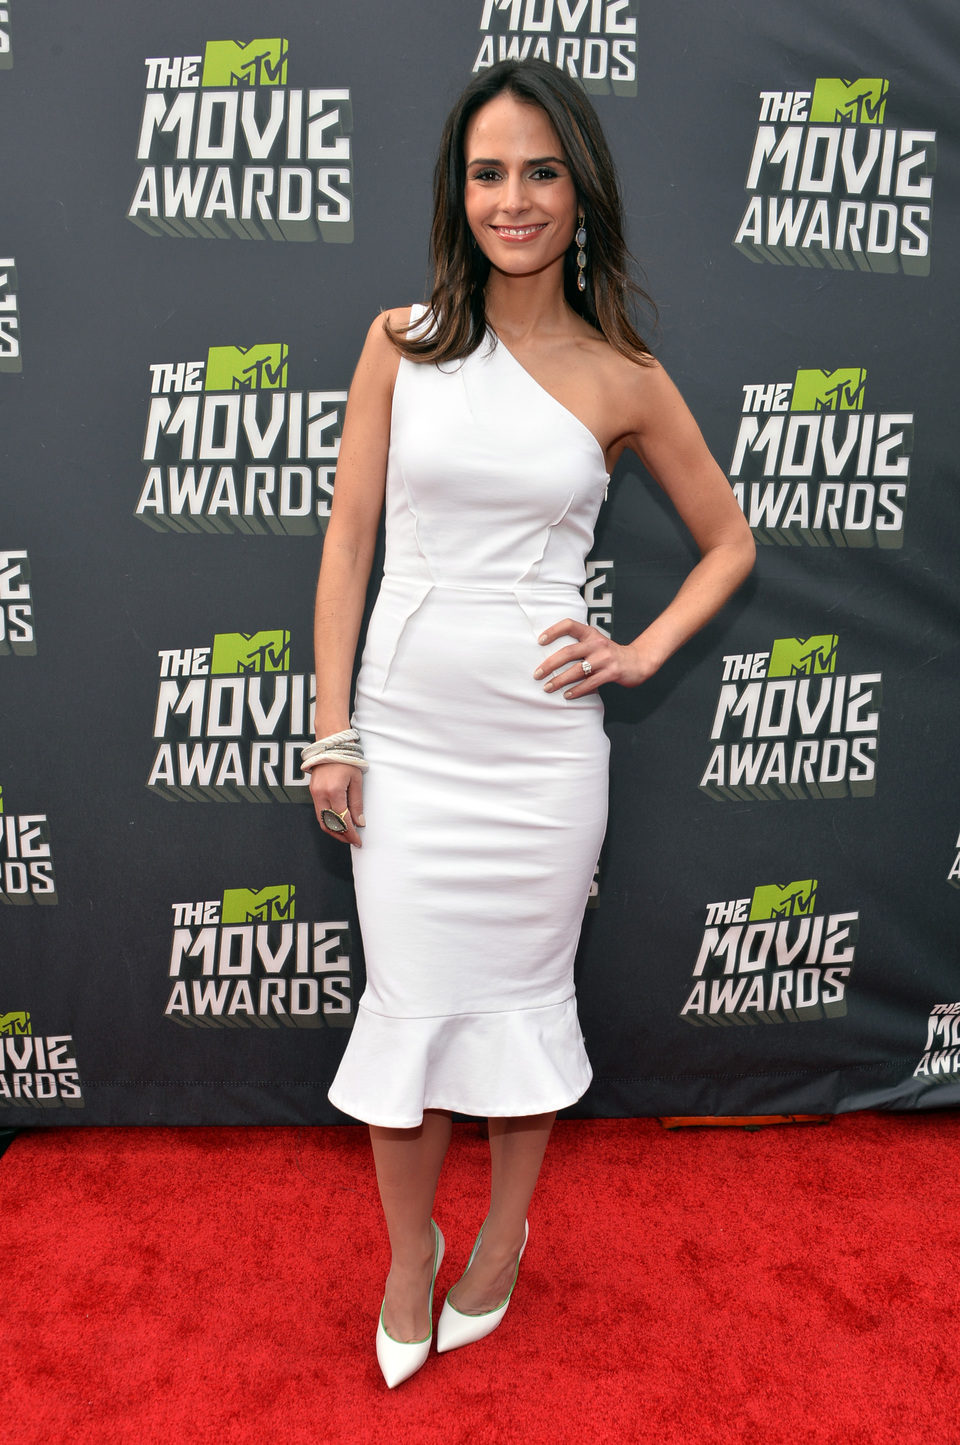 Jordana Brewster en la alfombra roja de la entrega de los MTV Movie Awards 2013